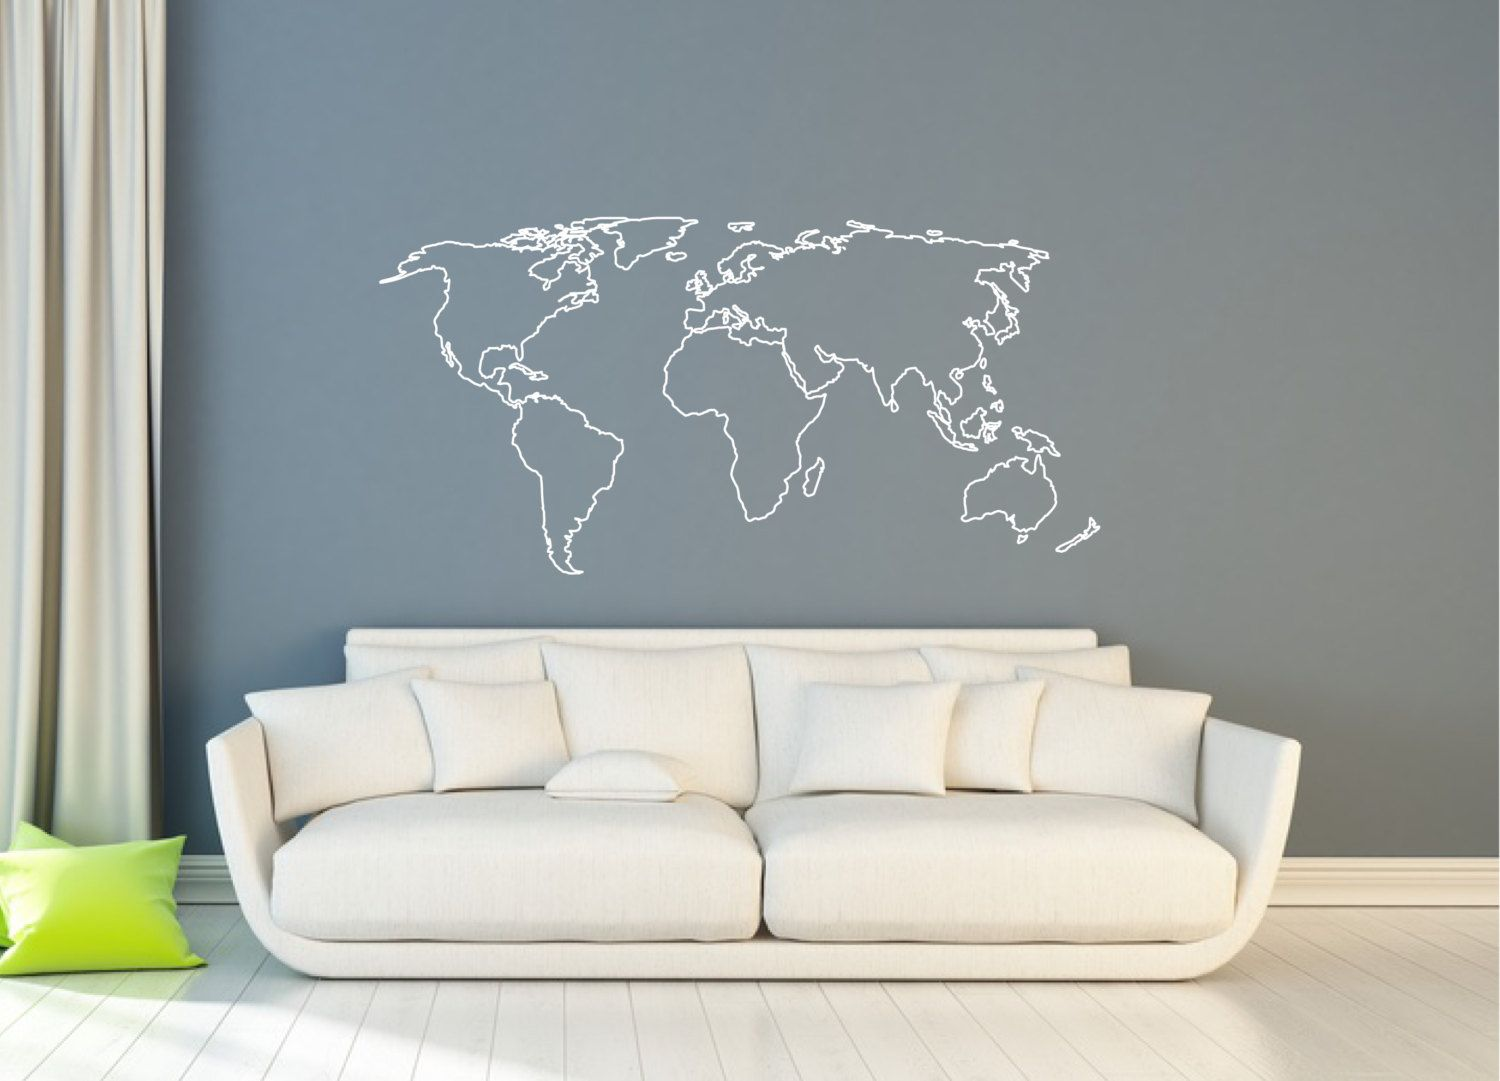 World map wall sticker design map of countries wall decal wall world map wall sticker design map of countries wall decal wall travel decor gumiabroncs Image collections